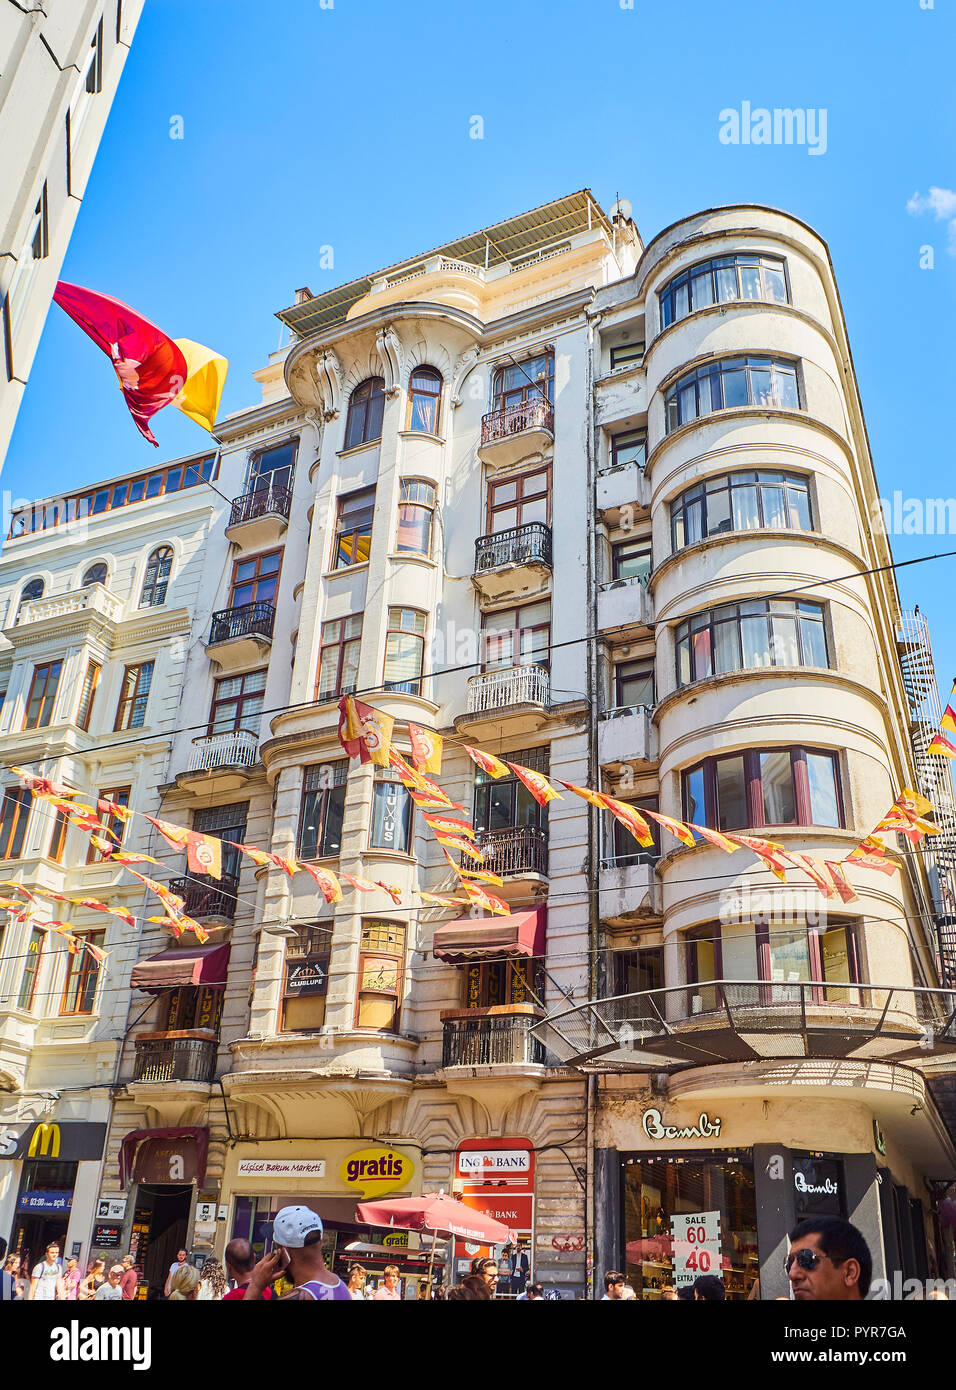 Bustling Istiklal street, adorned with pennants of the Galatasaray Sports Club. Beyoglu district. Istanbul, Turkey. - Stock Image